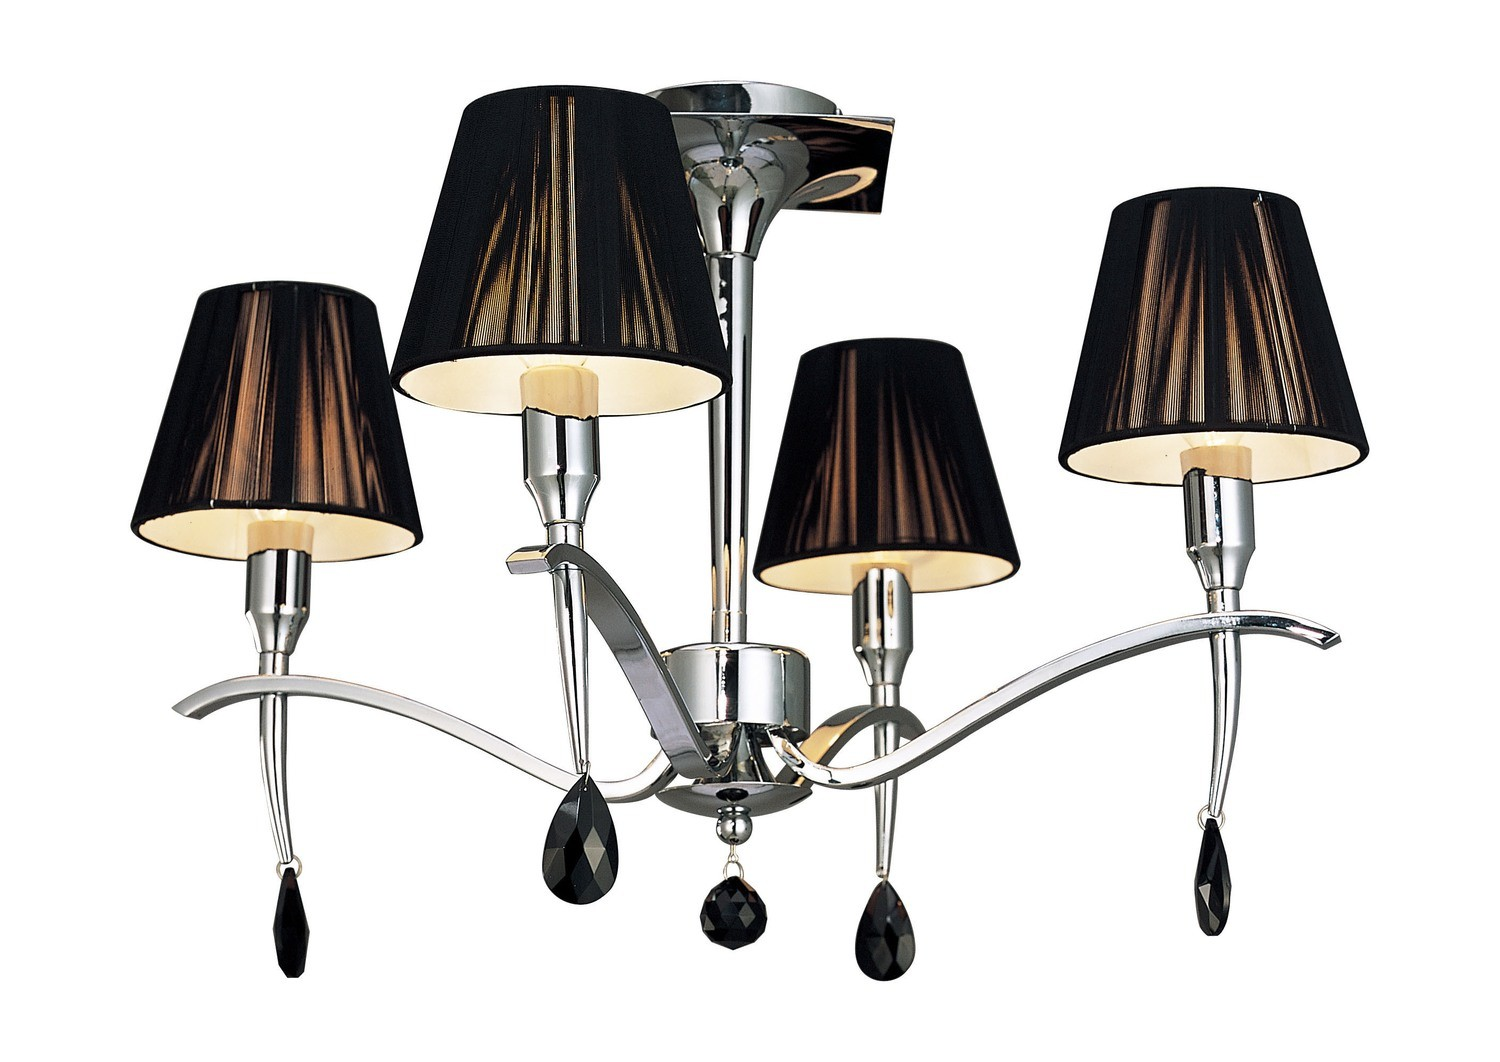 Siena Semi Ceiling Round 4 Light E14, Polished Chrome With Black Shades And Black Crystal